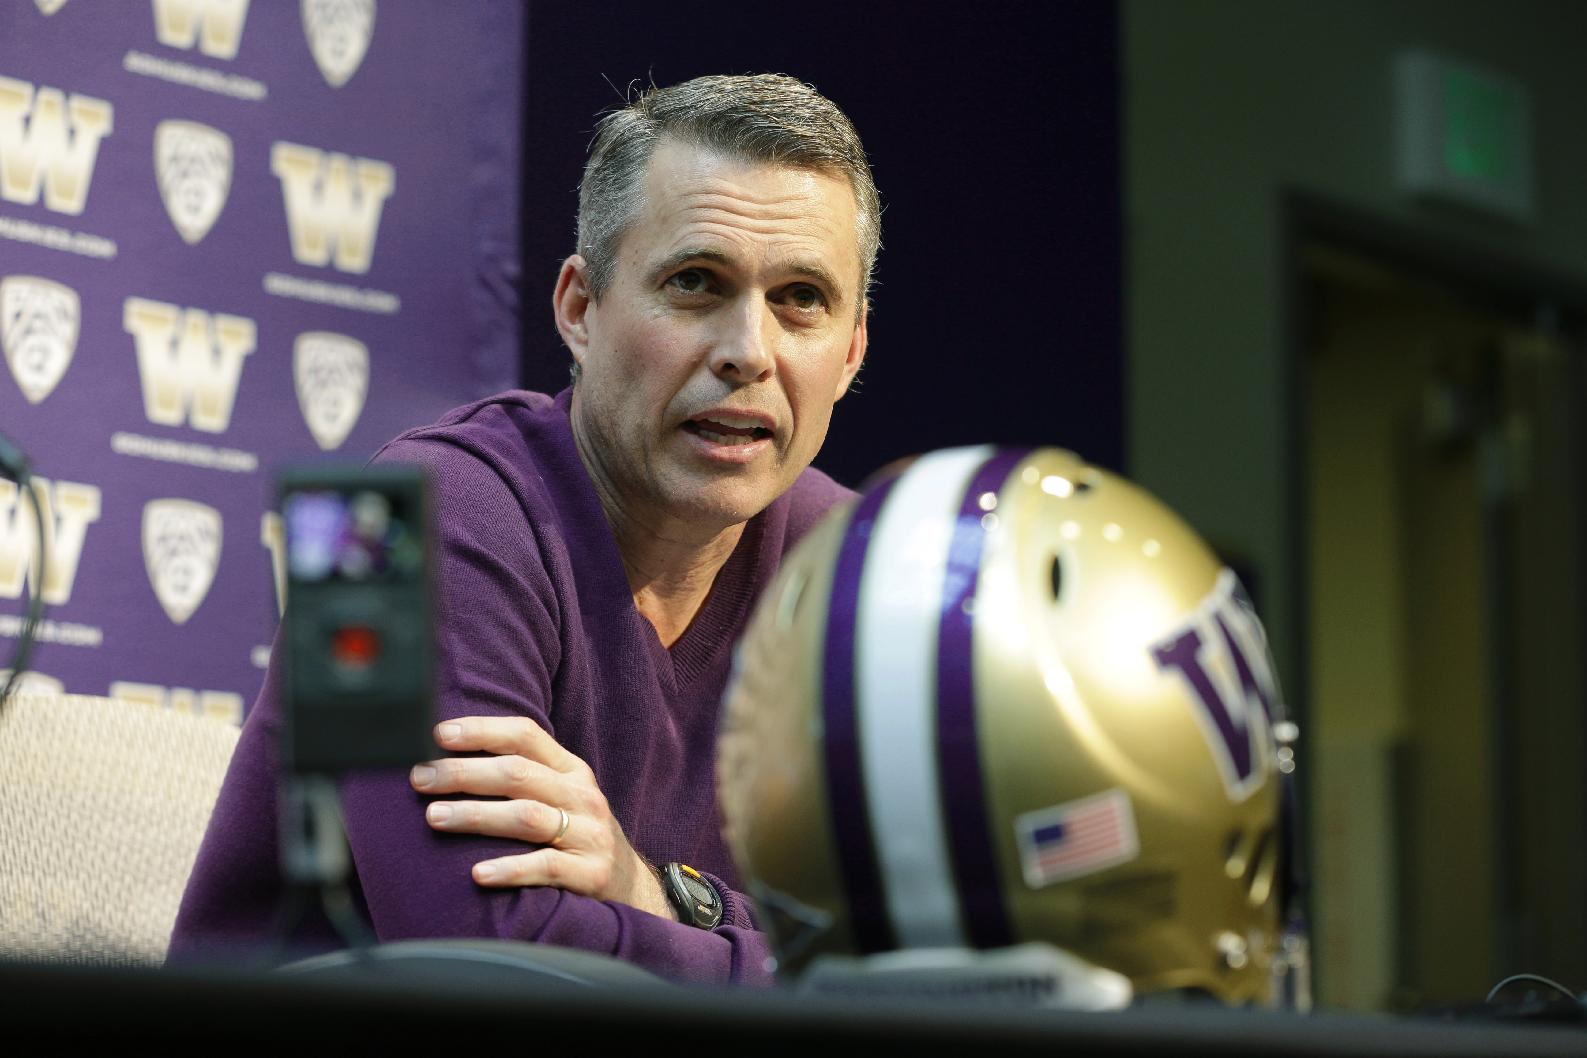 Washington head football coach Chris Petersen talks to reporters Monday, March 3, 2014, in Seattle. Washington begins spring NCAA college football practice on Tuesday, March 4, 2014